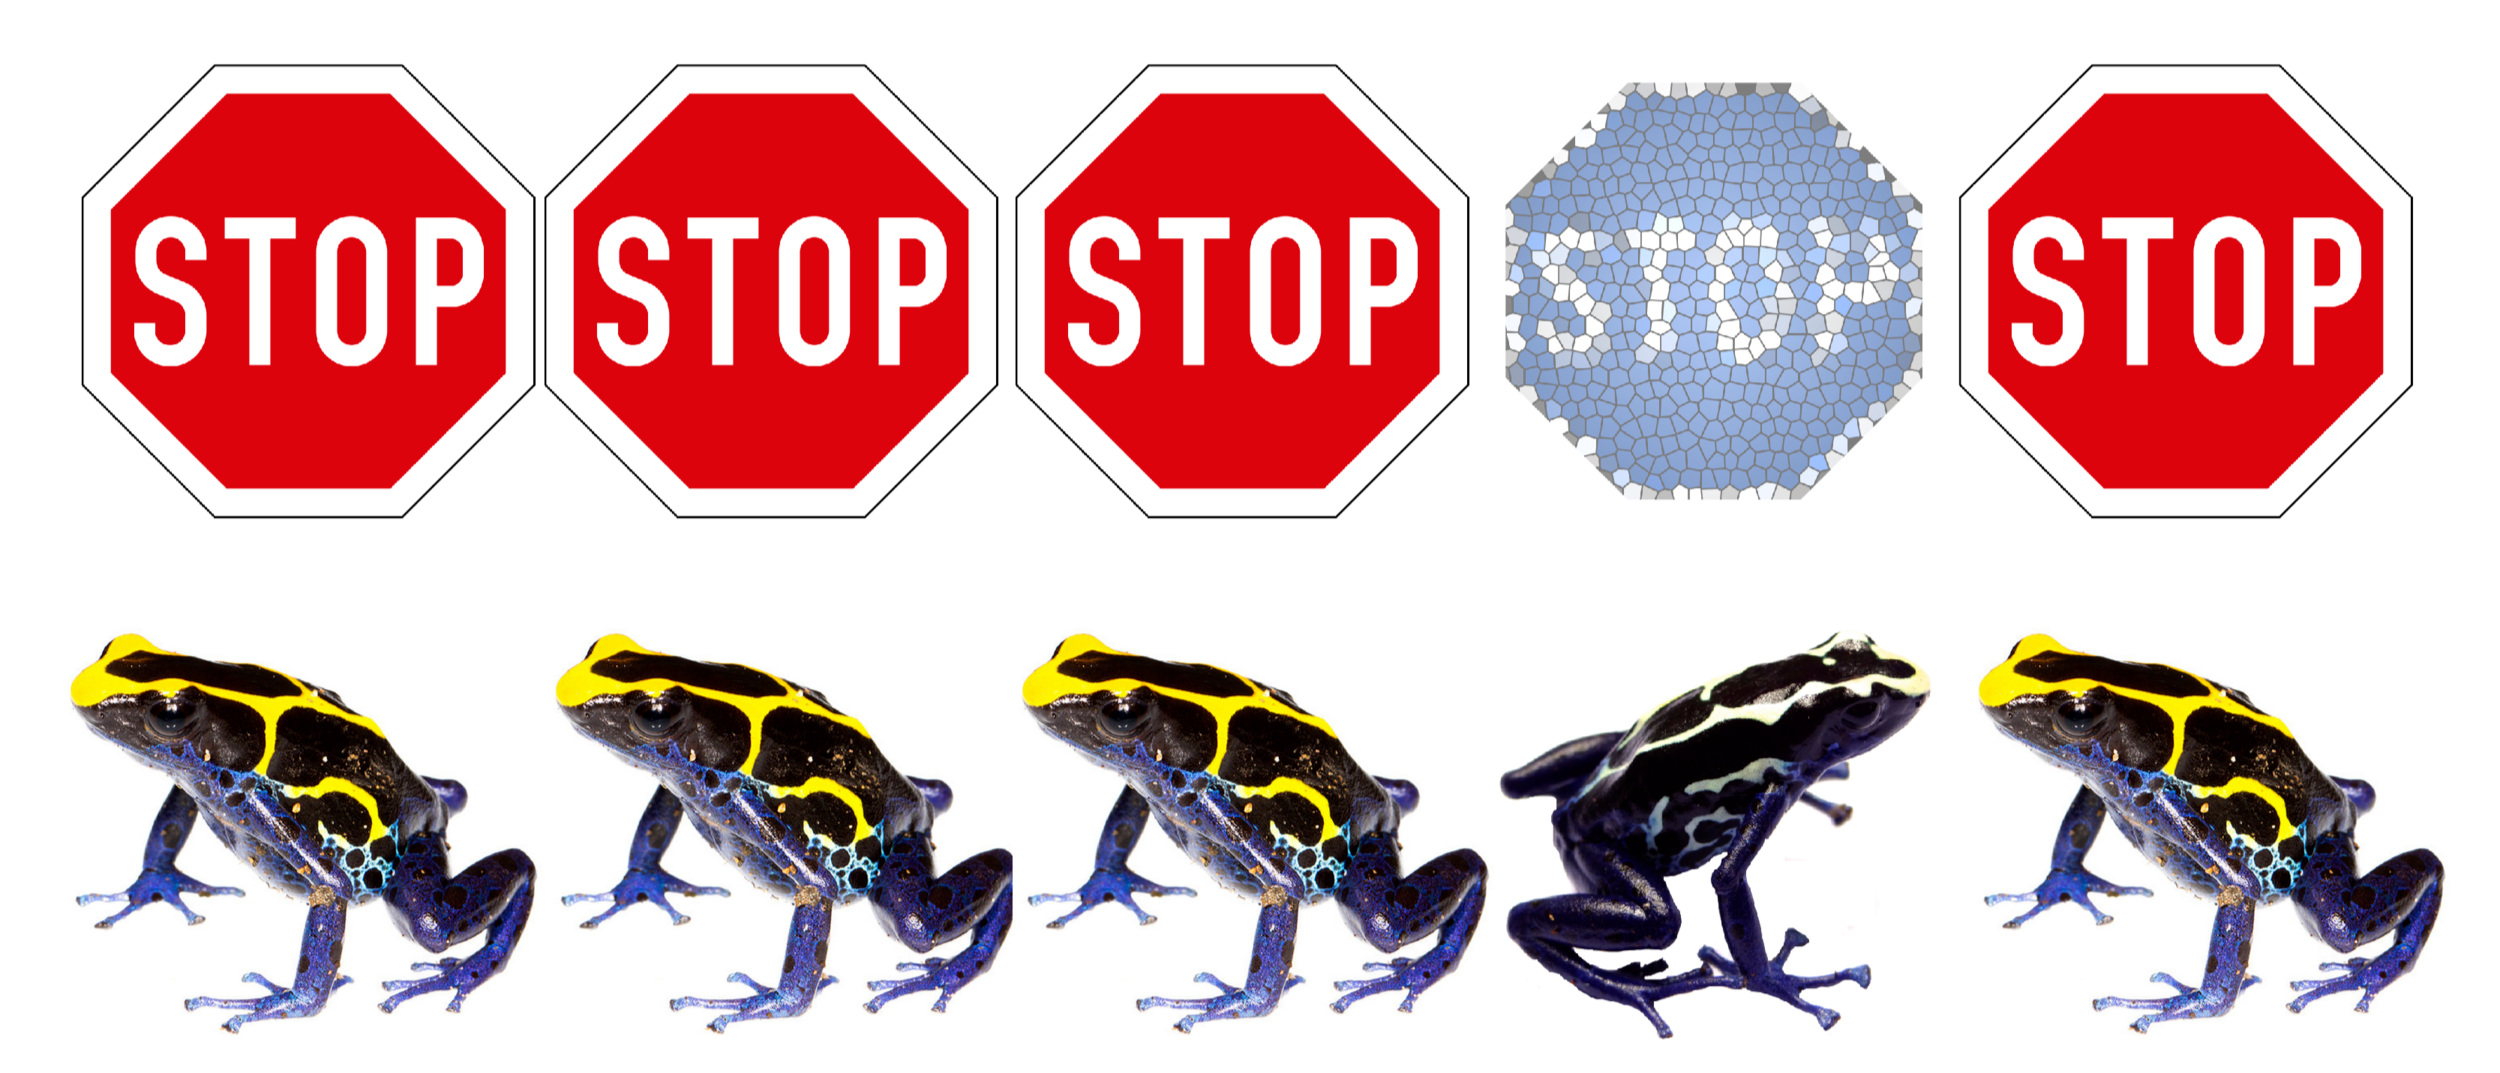 The blue stop sign is less effective than red ones, because red is a common signal for stop. The white-striped frog has a less effective signal than yellow-striped frogs, because yellow is a more common signal for toxicity. Scientists do not expect frogs with different warning colors, just as drivers do not expect stop signs with different colors.   Image Sources: Red Stop Sign by United Nations – Vienna Convention on Road Signs and Signals,  Public Domain . Blue Stop Sign by  Nice4What , CC BY-SA 4.0. Yellow frog by J.P. Lawrence. White frog by B. Rojas.